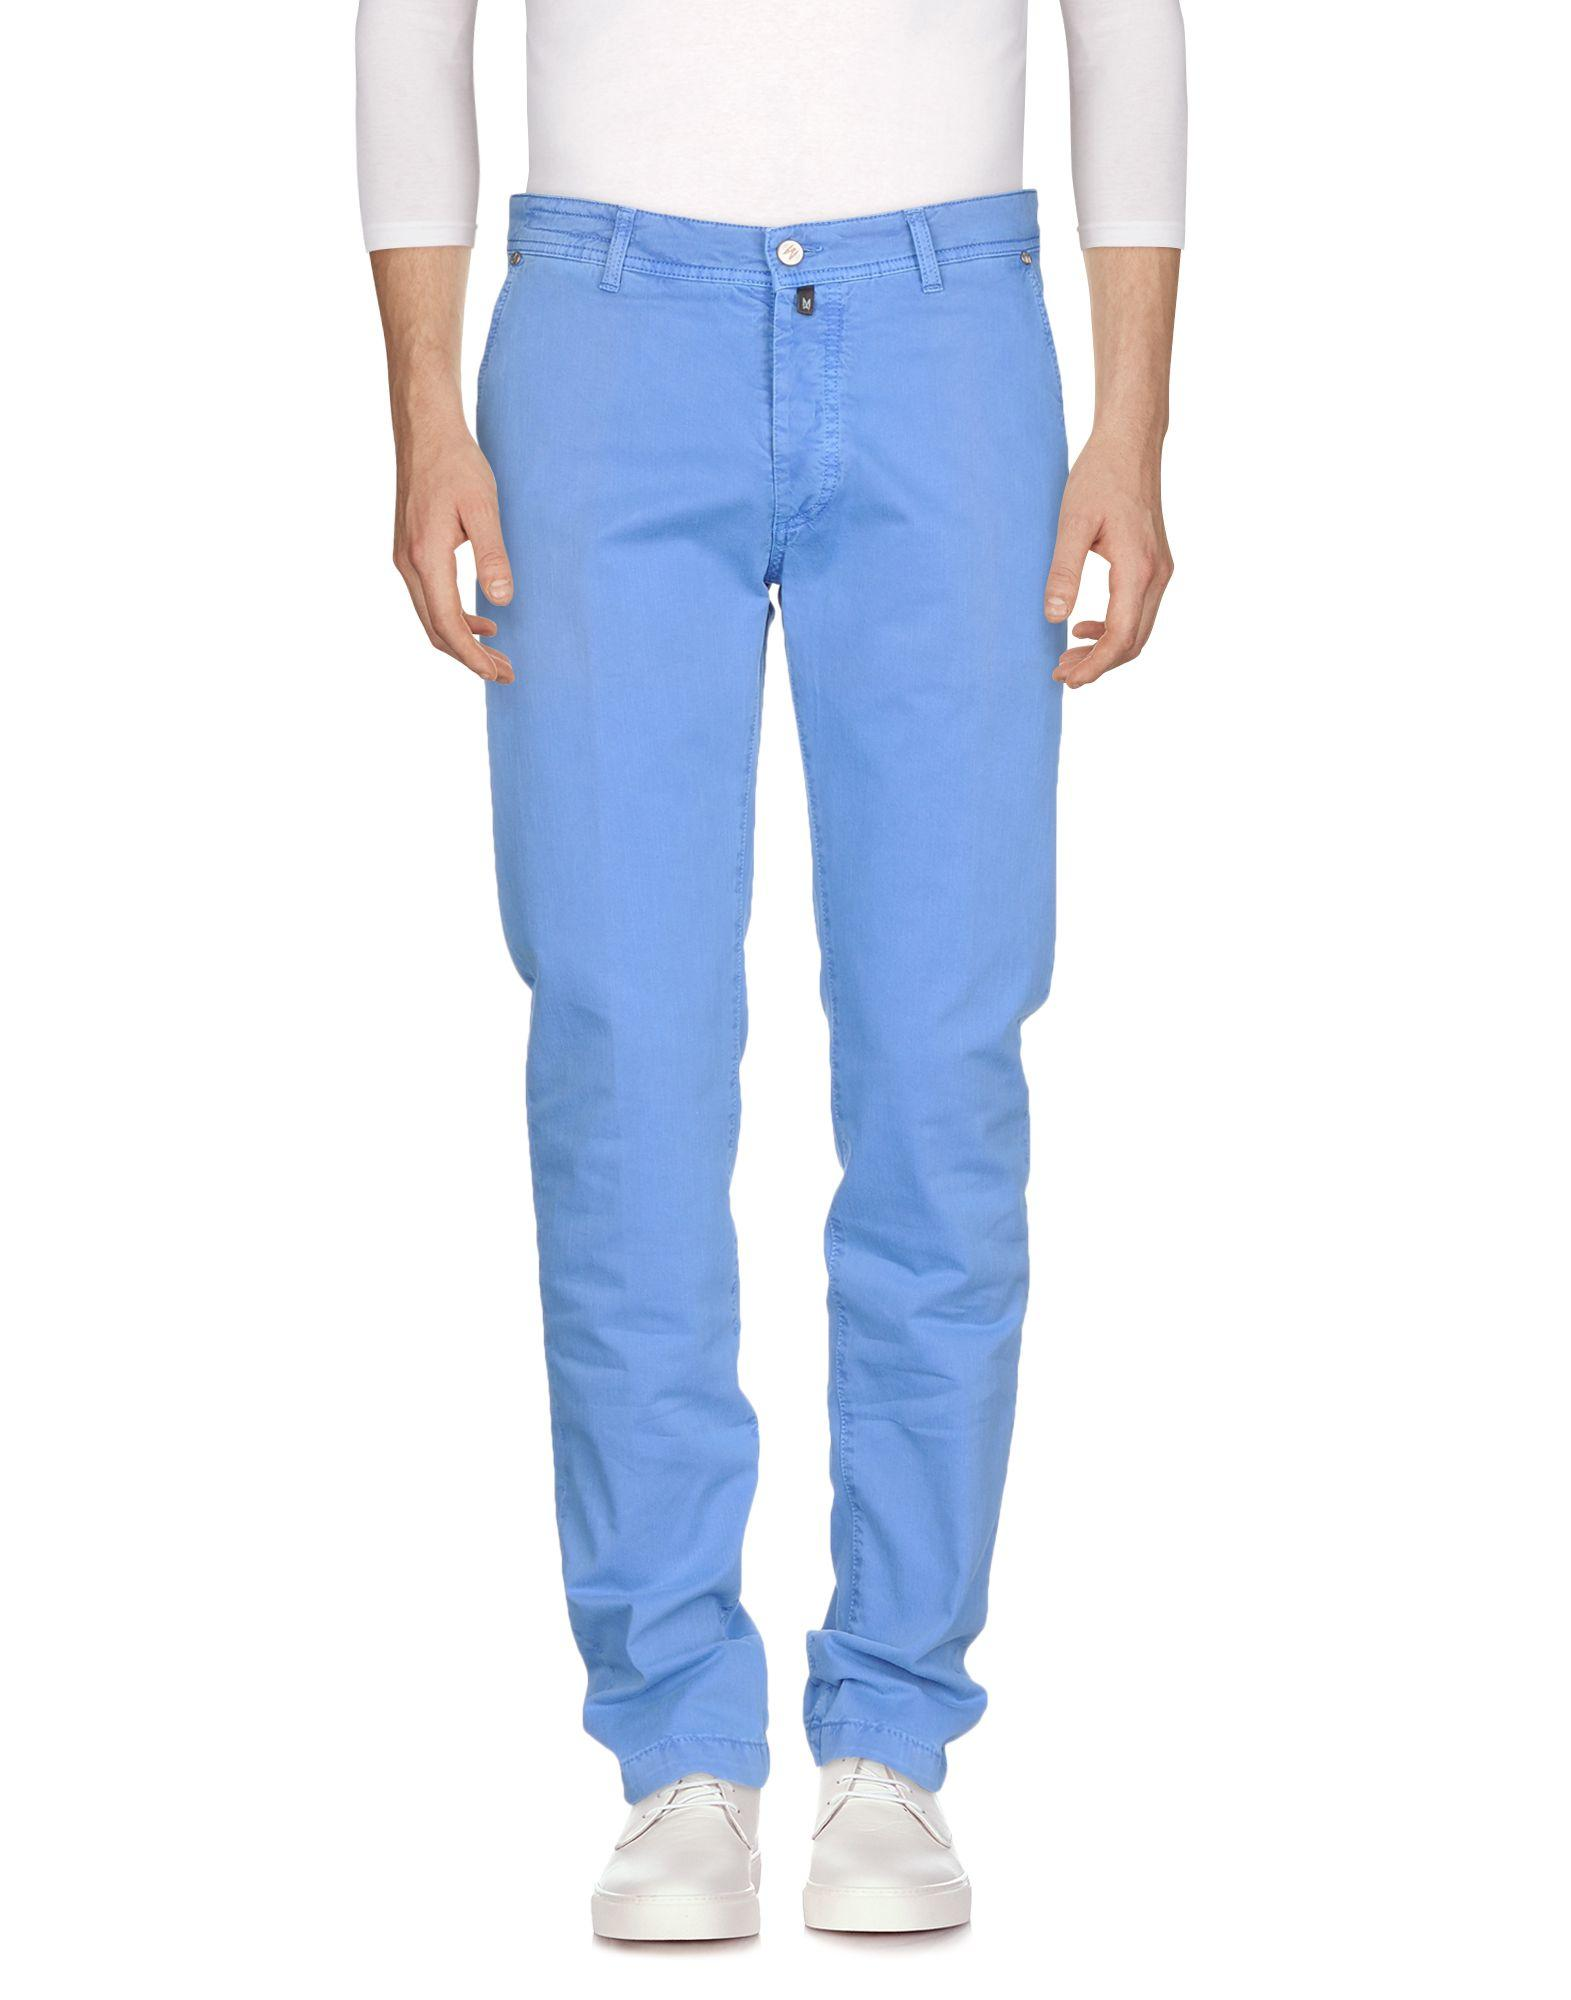 Marco Pescarolo Denim Pants In Pastel Blue